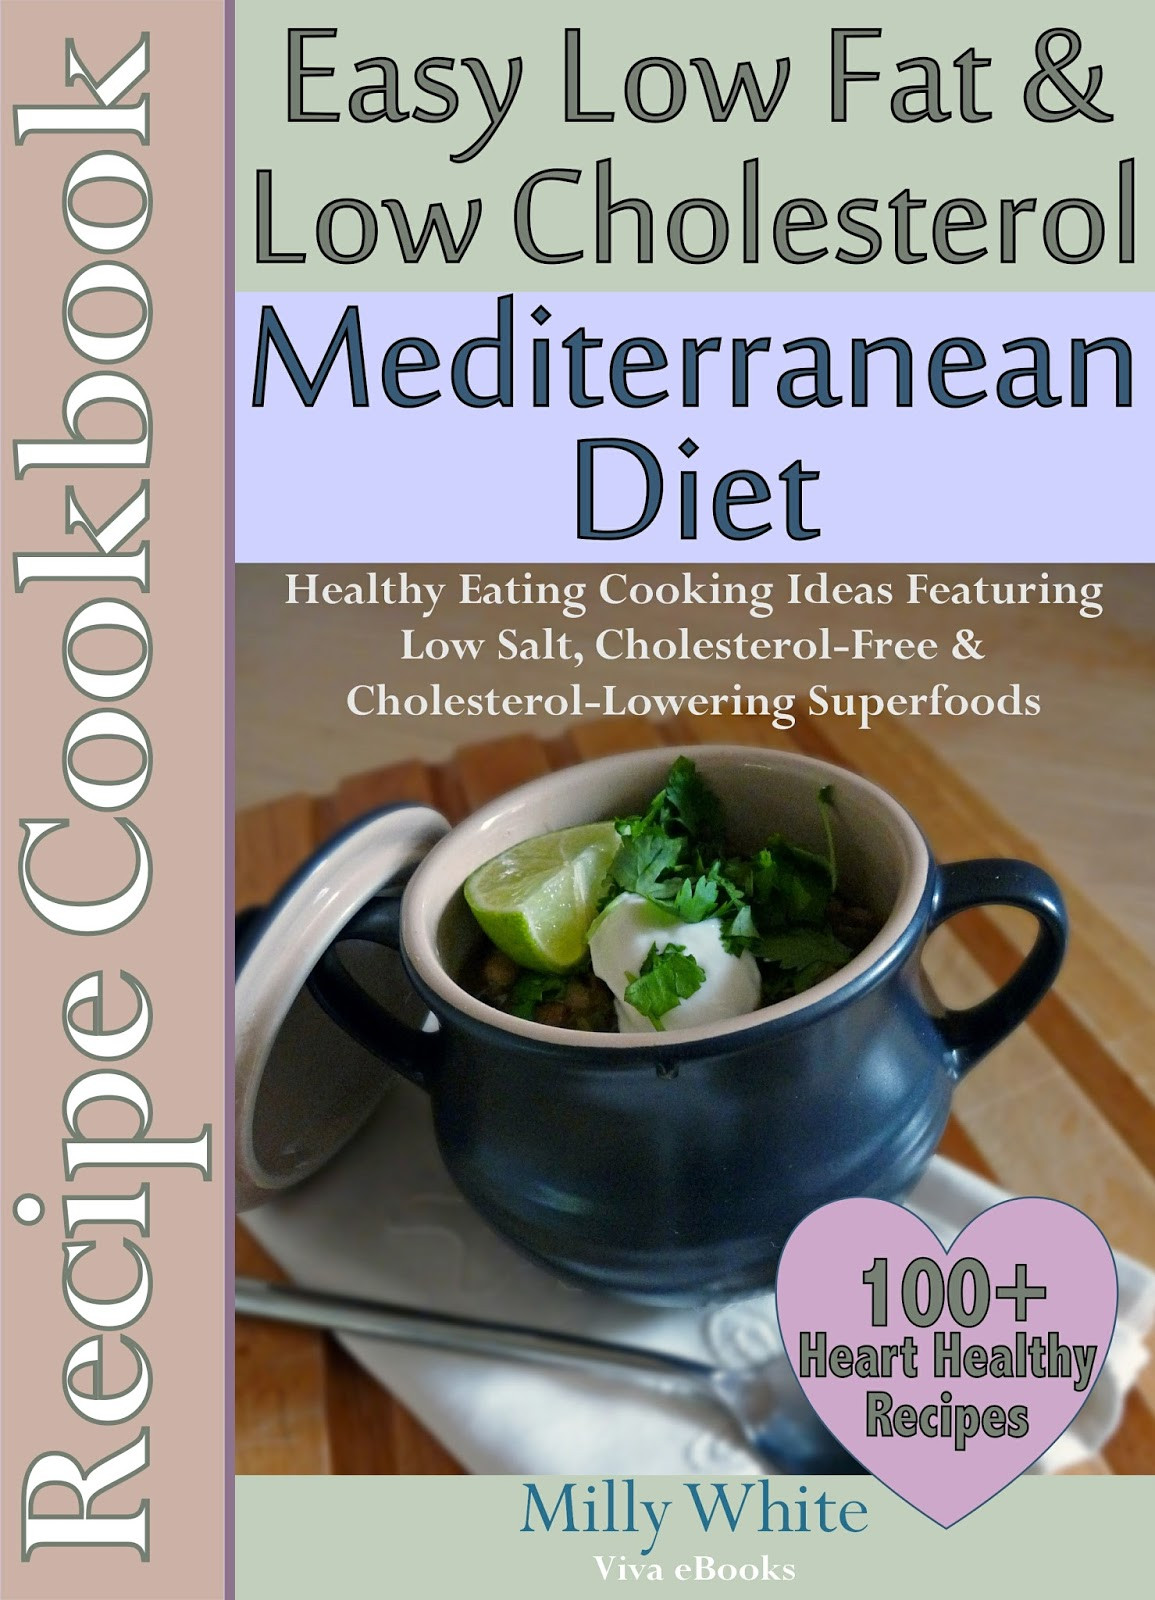 Recipes For Low Cholesterol  Dips Delectus Cholesterol The Silent Killer for